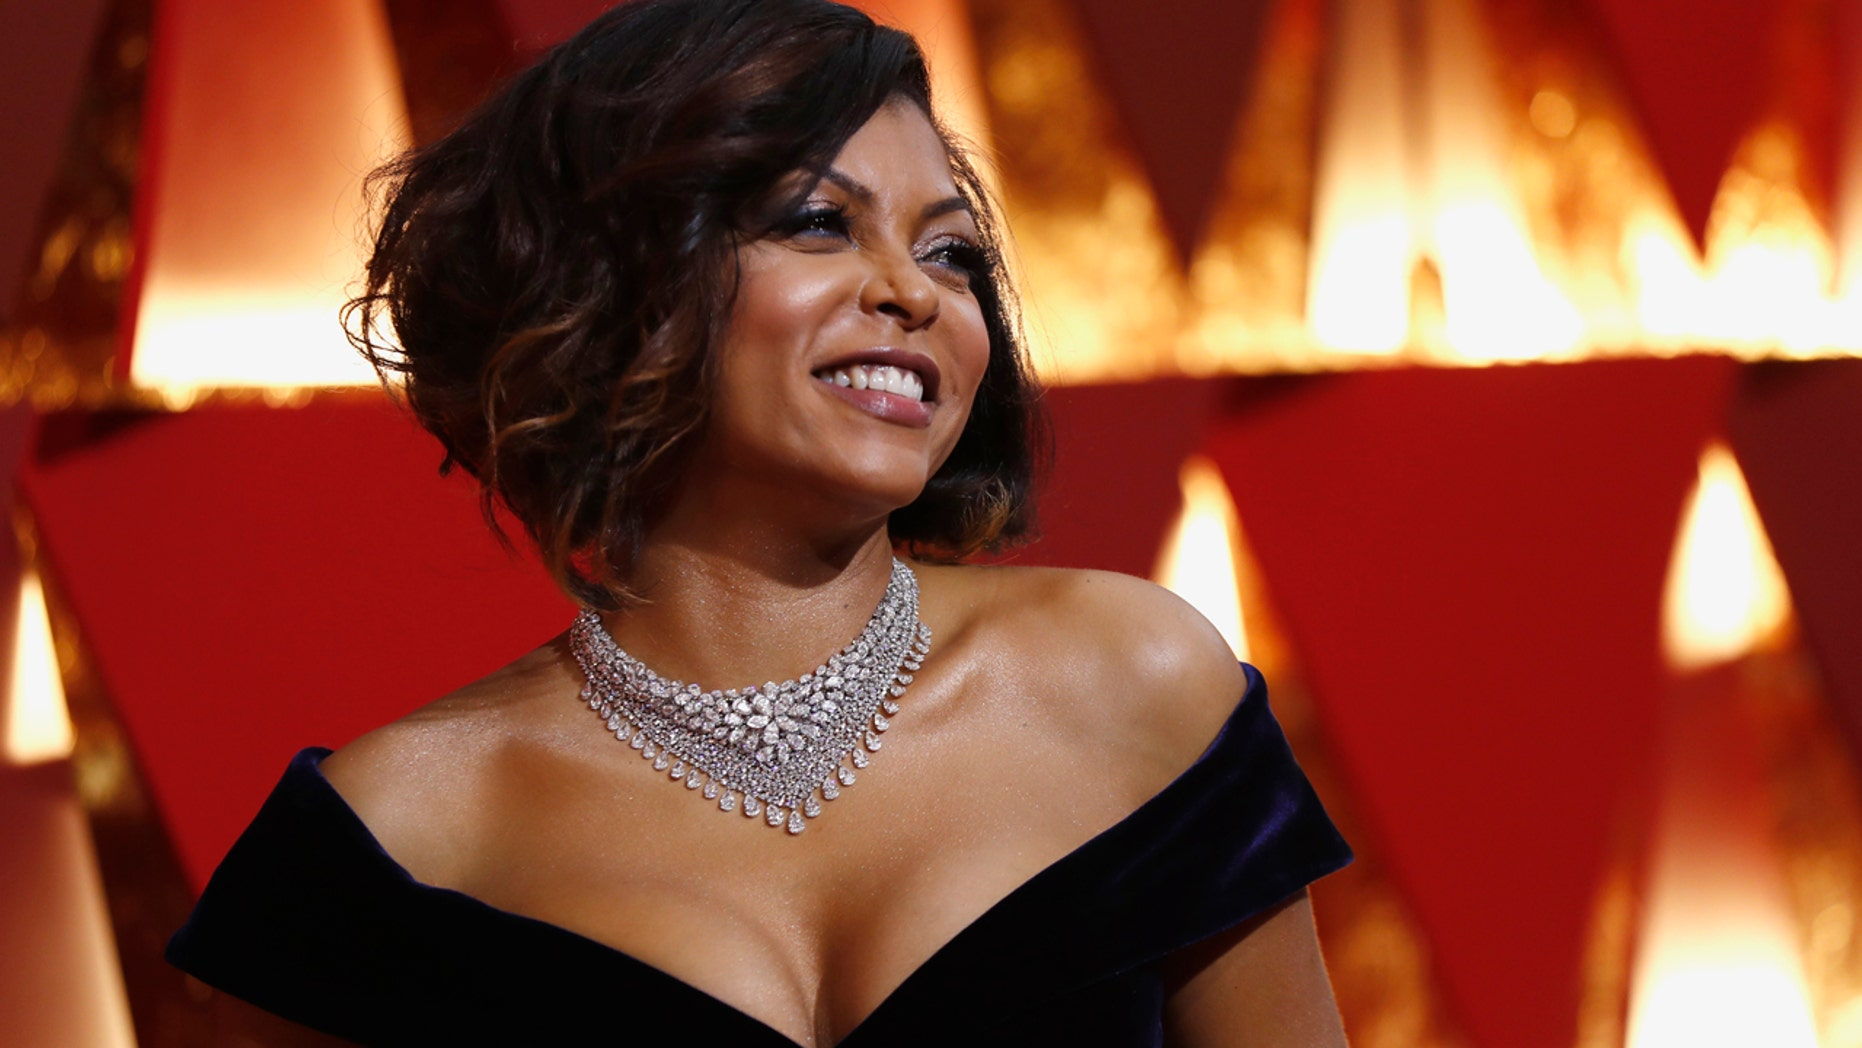 Taraji P. Henson parts ways with her manager, Vincent Cirrincione, after he was accused of sexual misconduct.